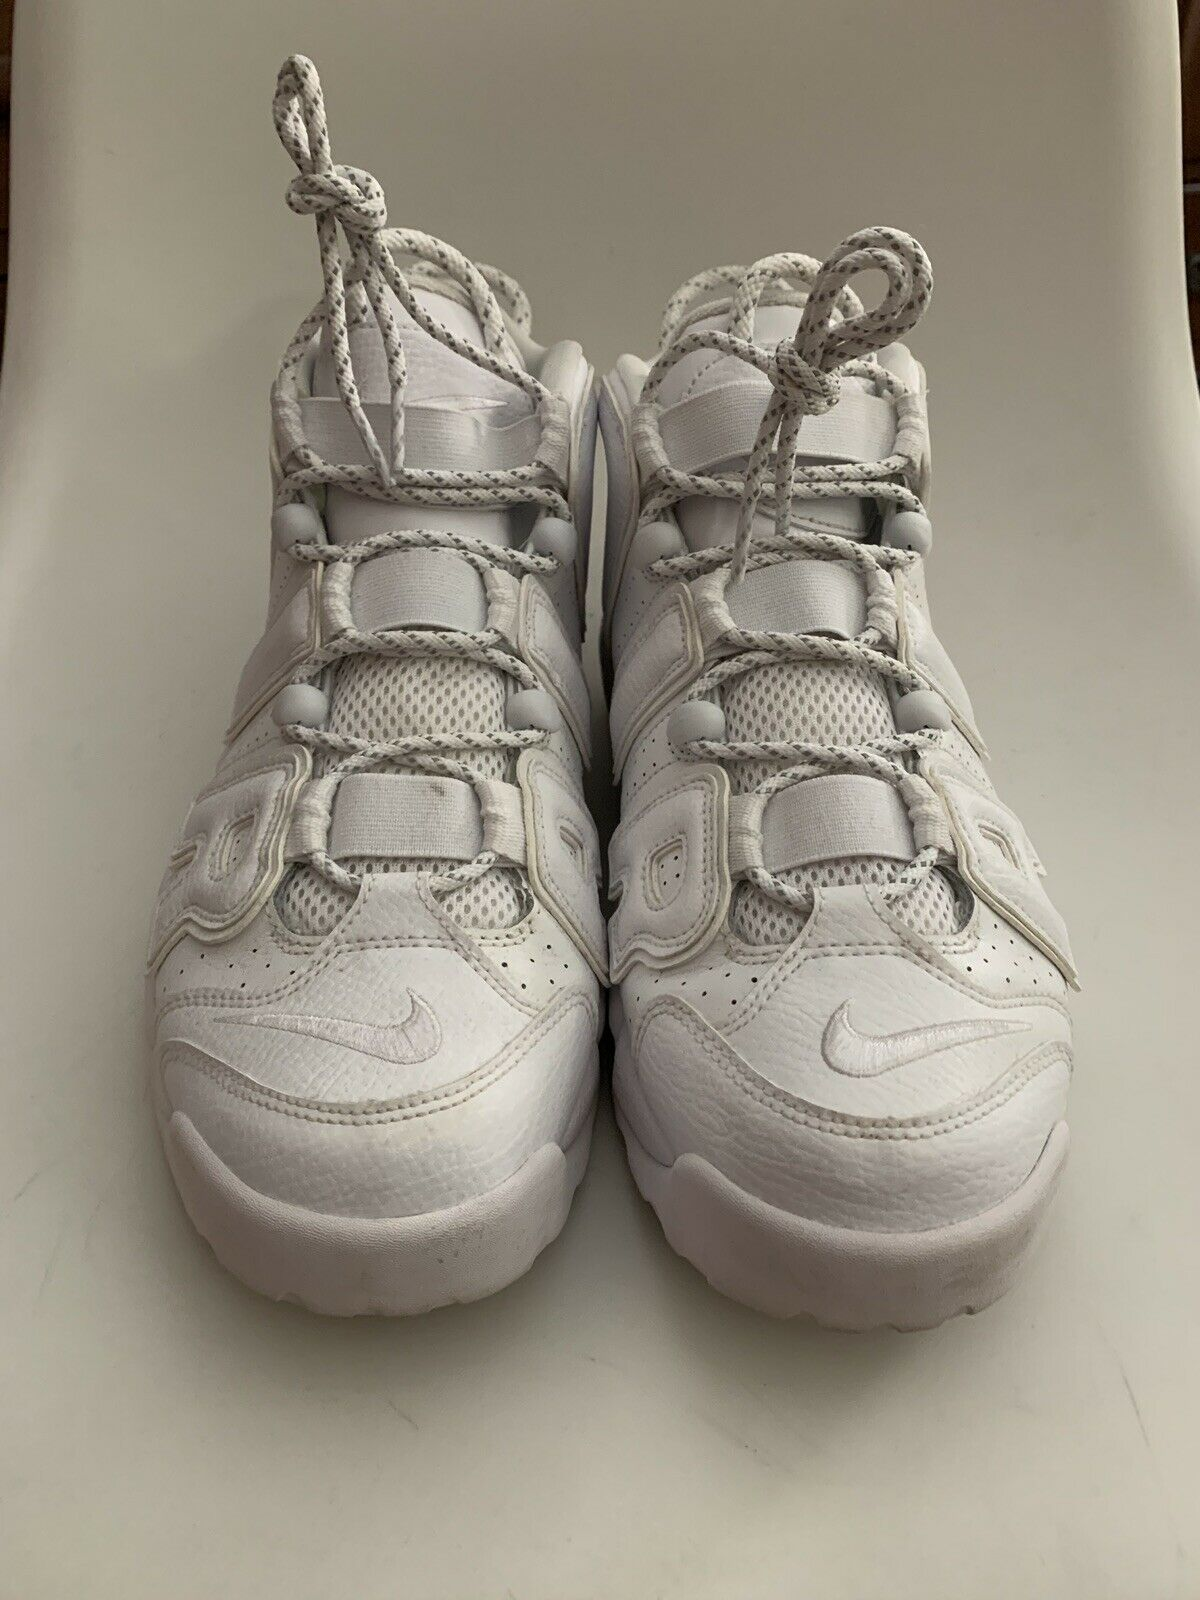 NIKE AIR MORE UPTEMPO 96 TRIPLE WHITE PRE OWNED SIZE 10.5